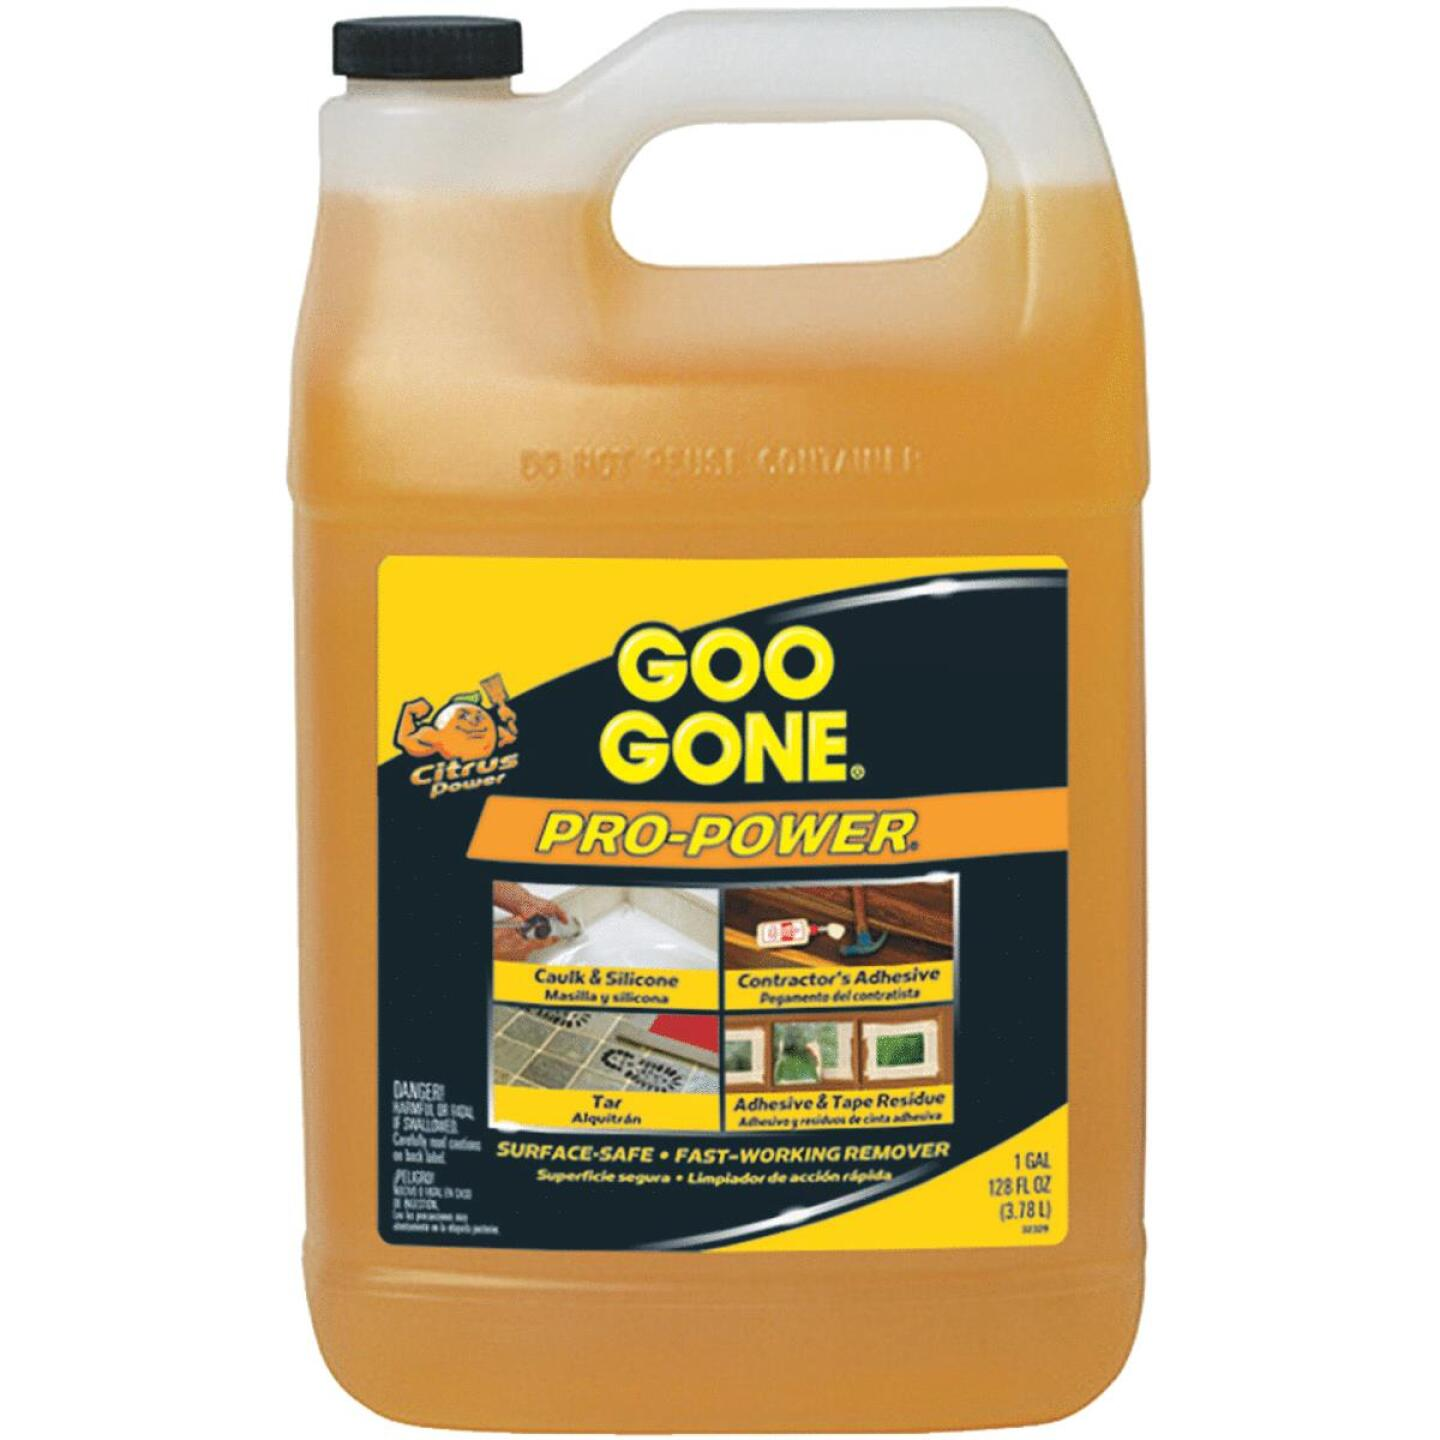 Goo Gone 1 Gal. Pro-Power Adhesive Remover Image 155